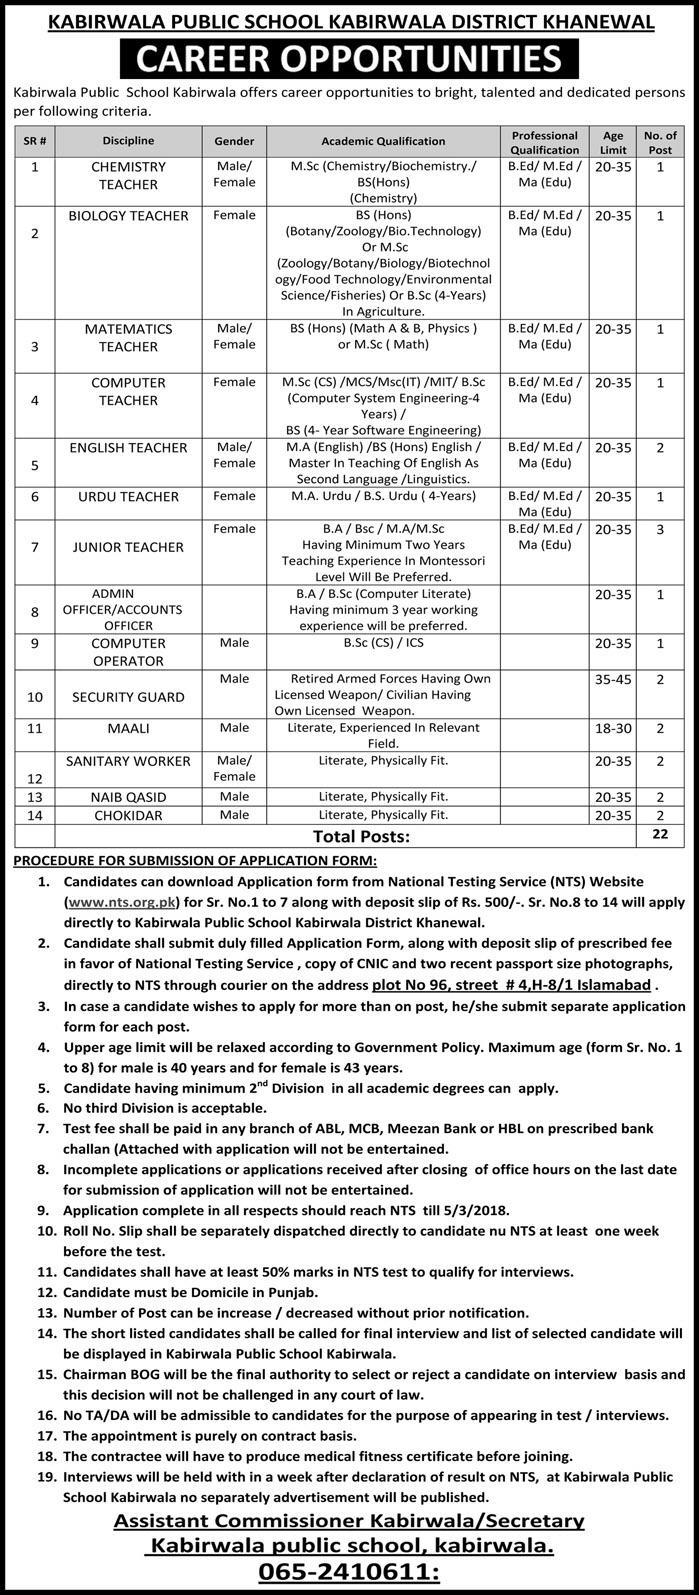 Kabirwala Public School 22 Jobs, 18th February 2018, Daily Express Newspaper